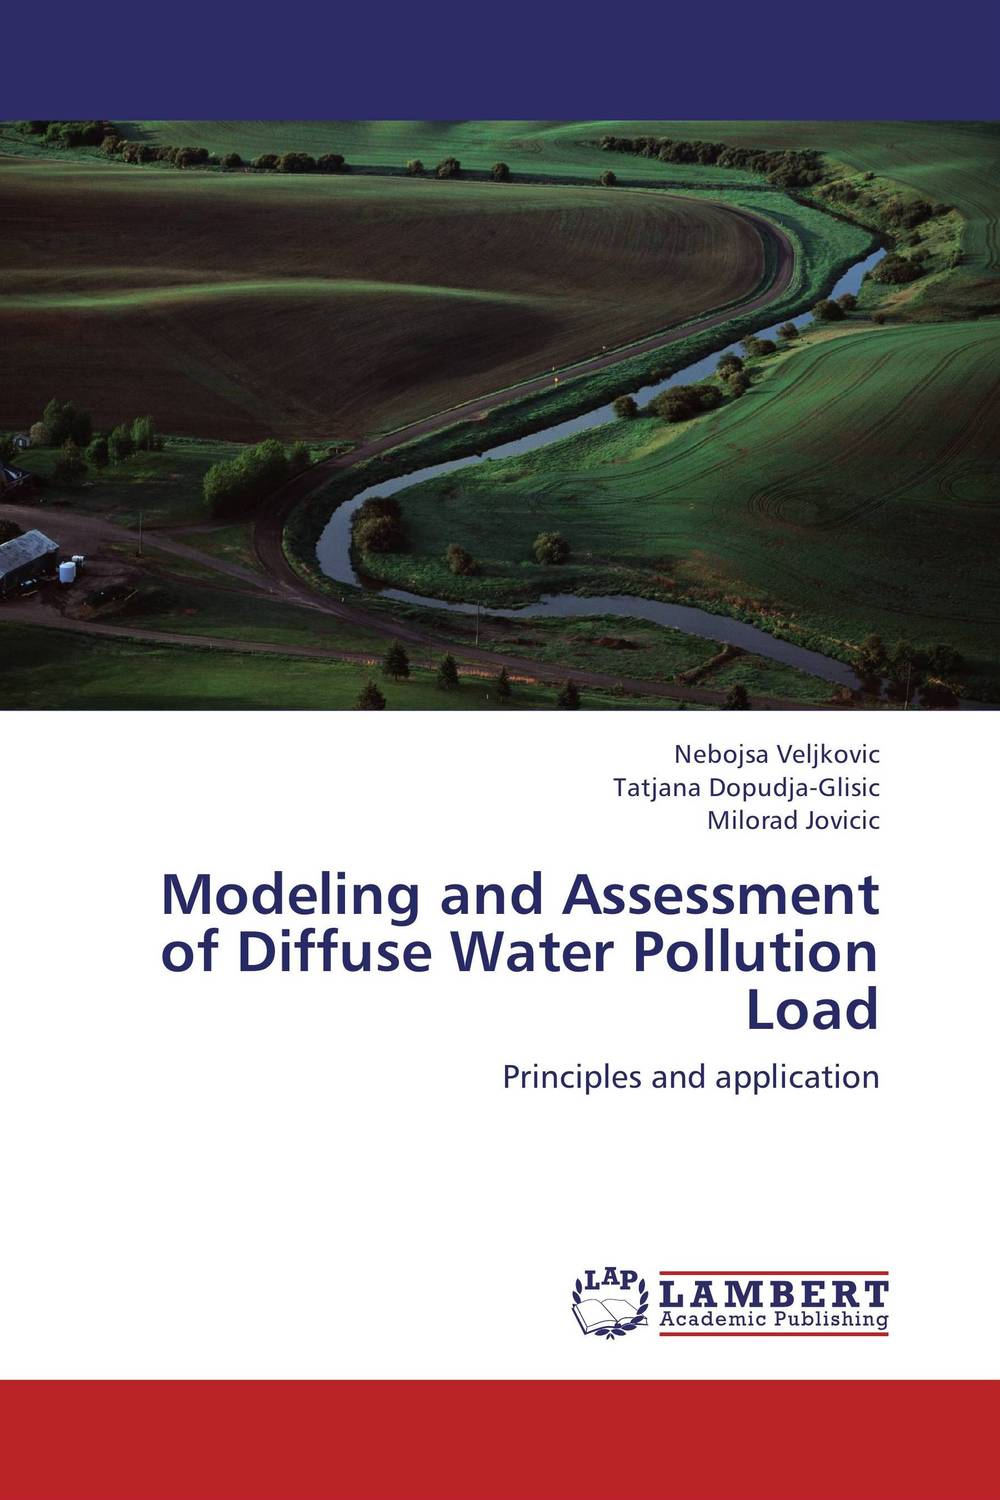 Modeling and Assessment of Diffuse Water Pollution Load n giusti diffuse entrepreneurship and the very heart of made in italy for fashion and luxury goods